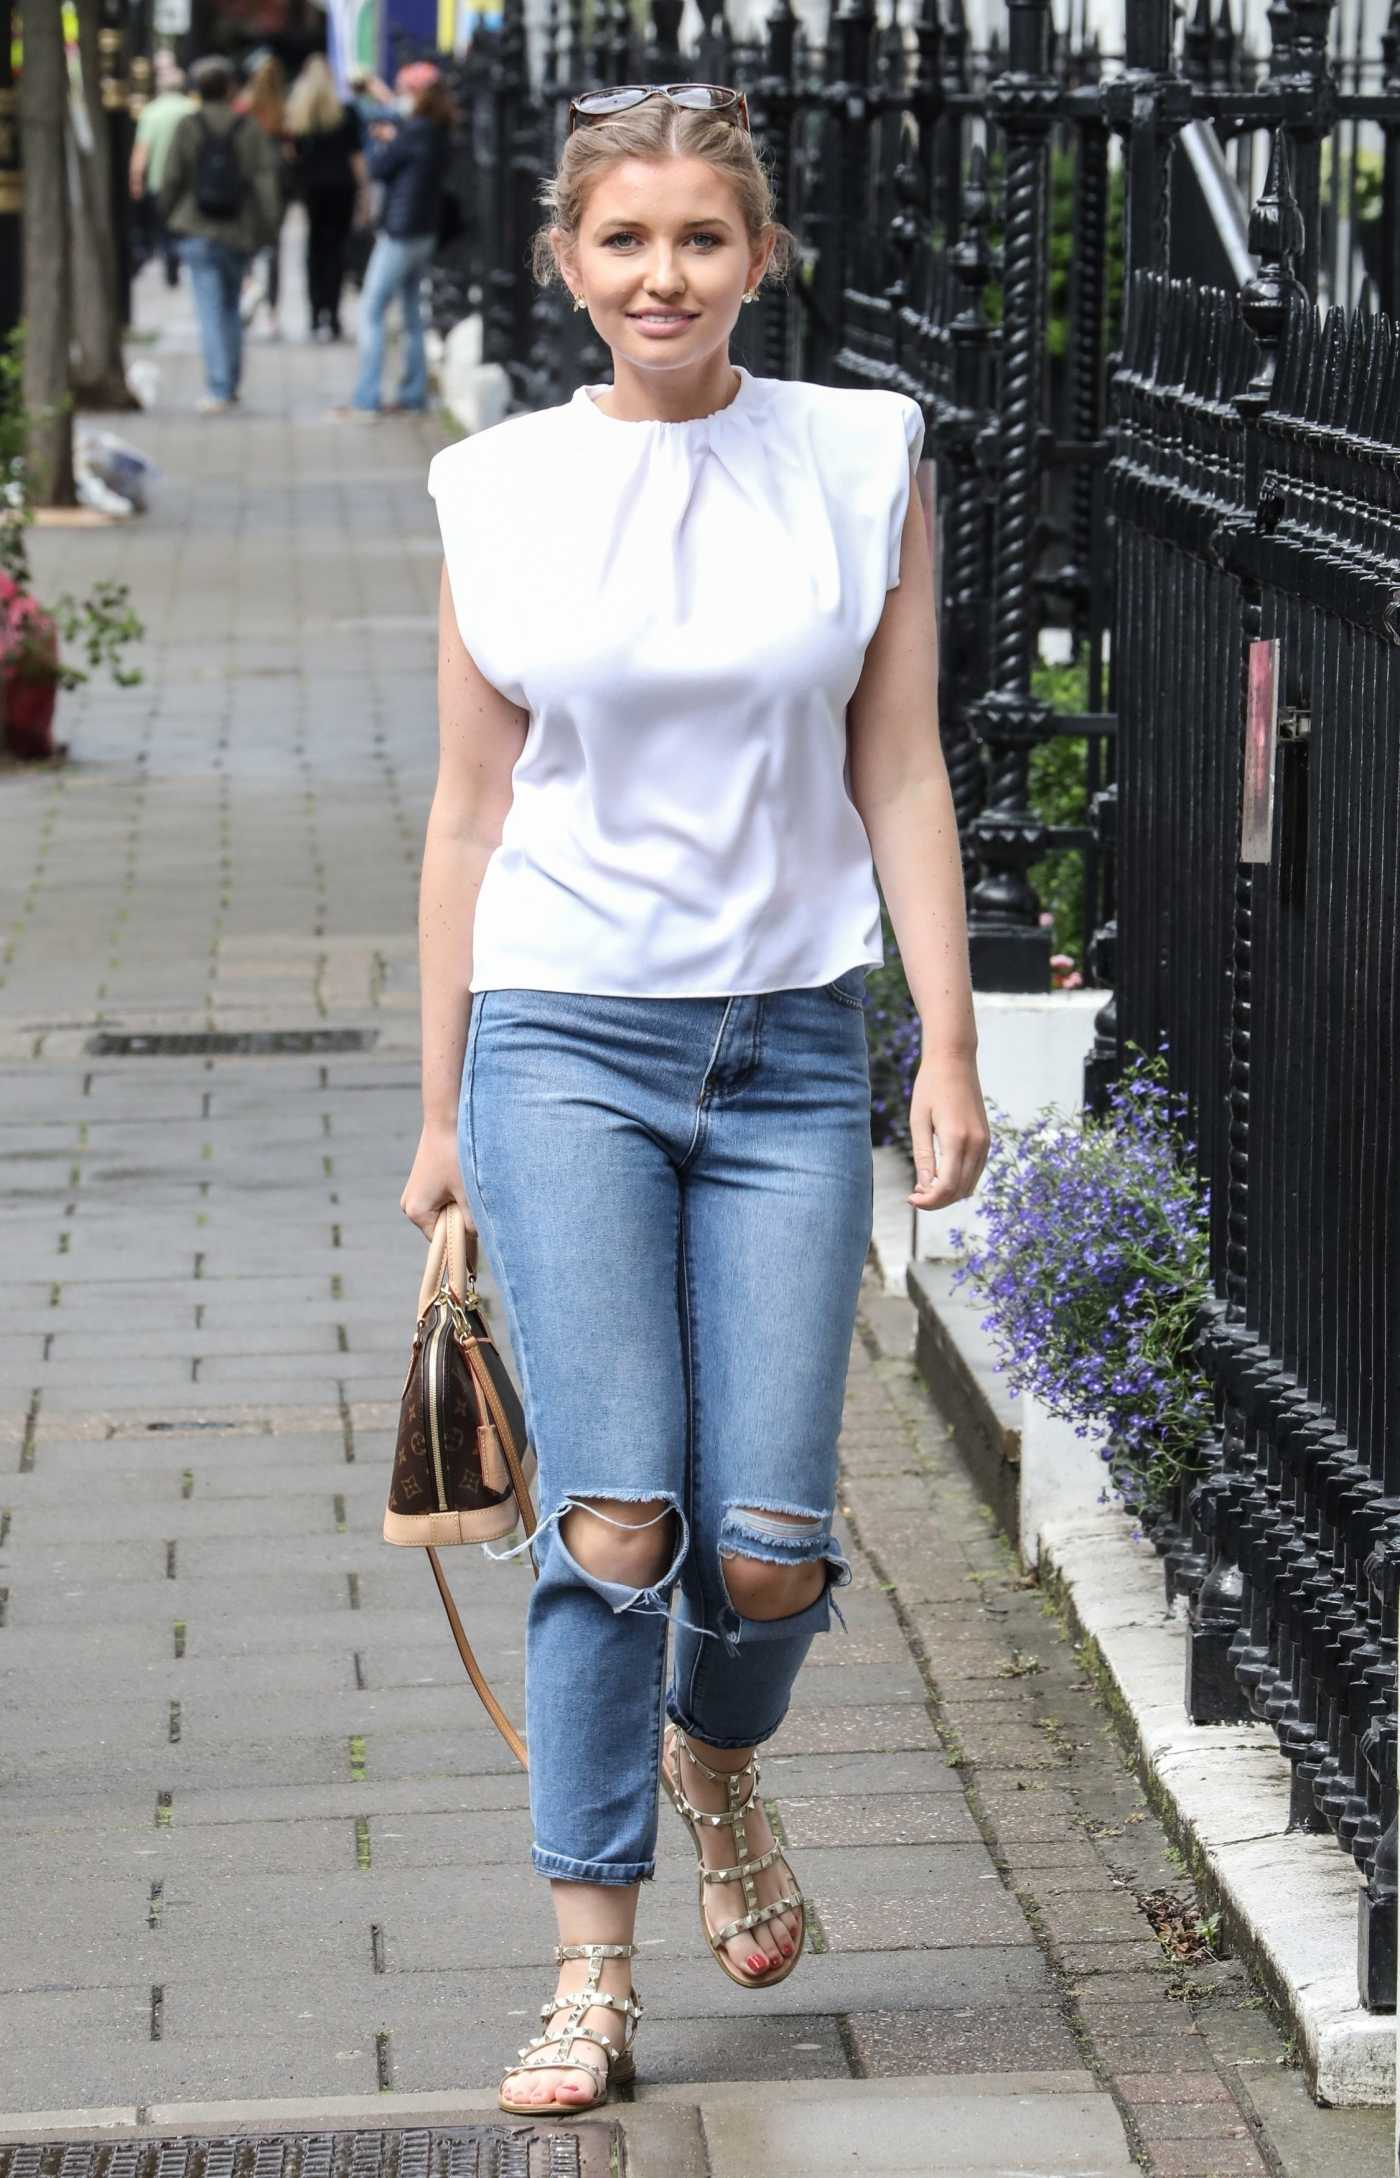 Amy Hart in a White Blouse Visits the Dr. Richard Clinic in London 07/01/2020